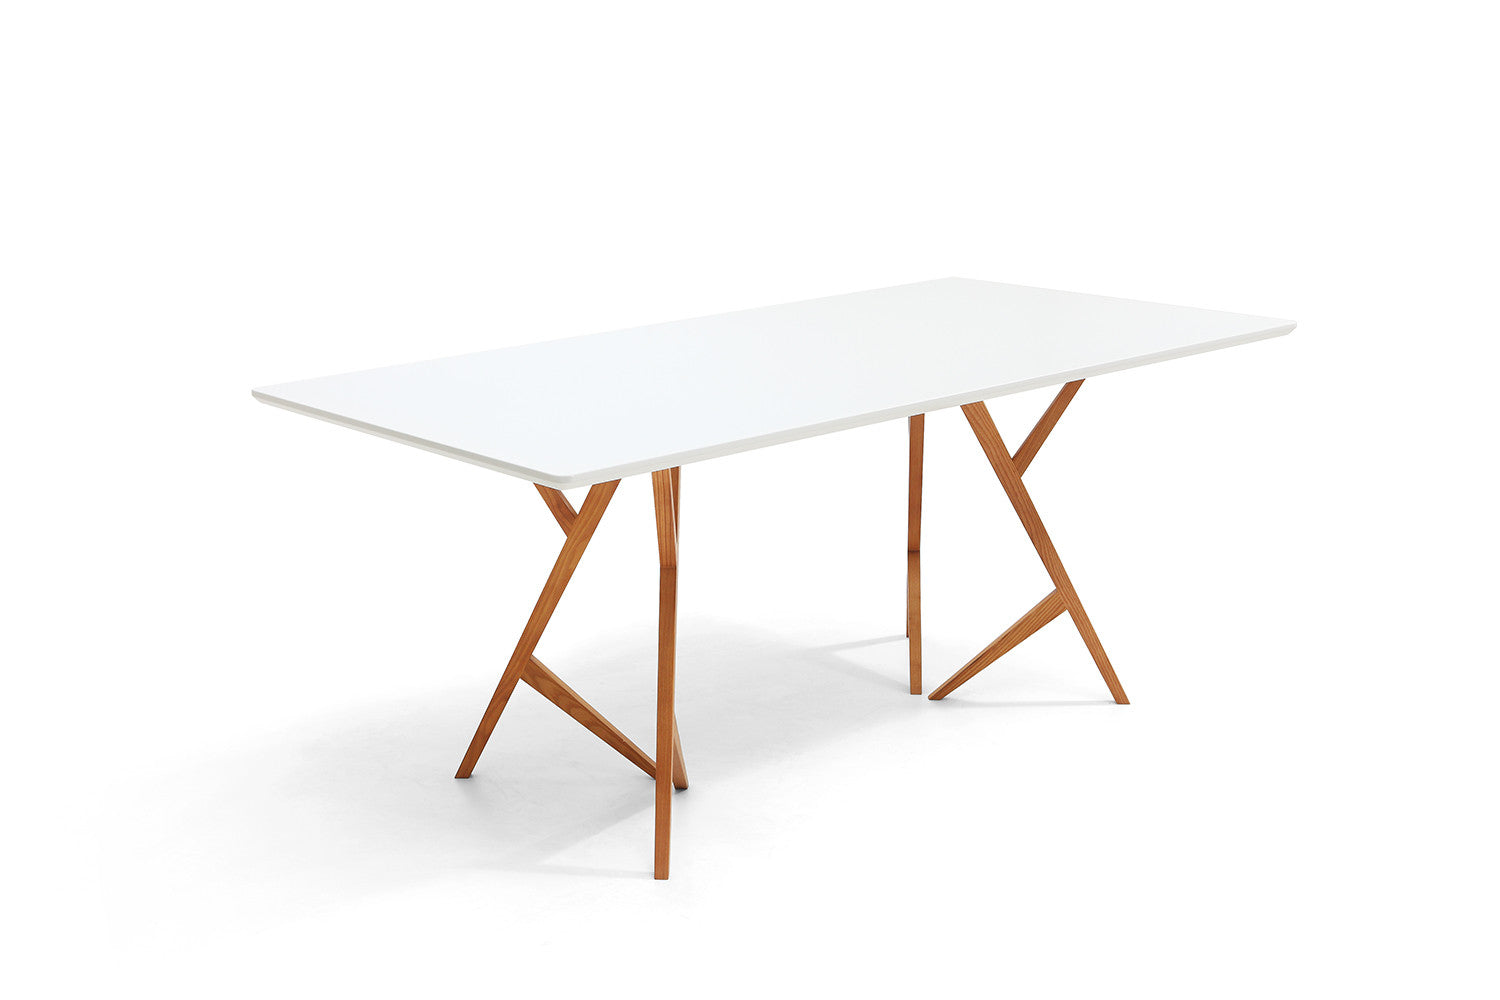 Table de salle manger design scandinave vispa dewarens for Table a manger blanche design